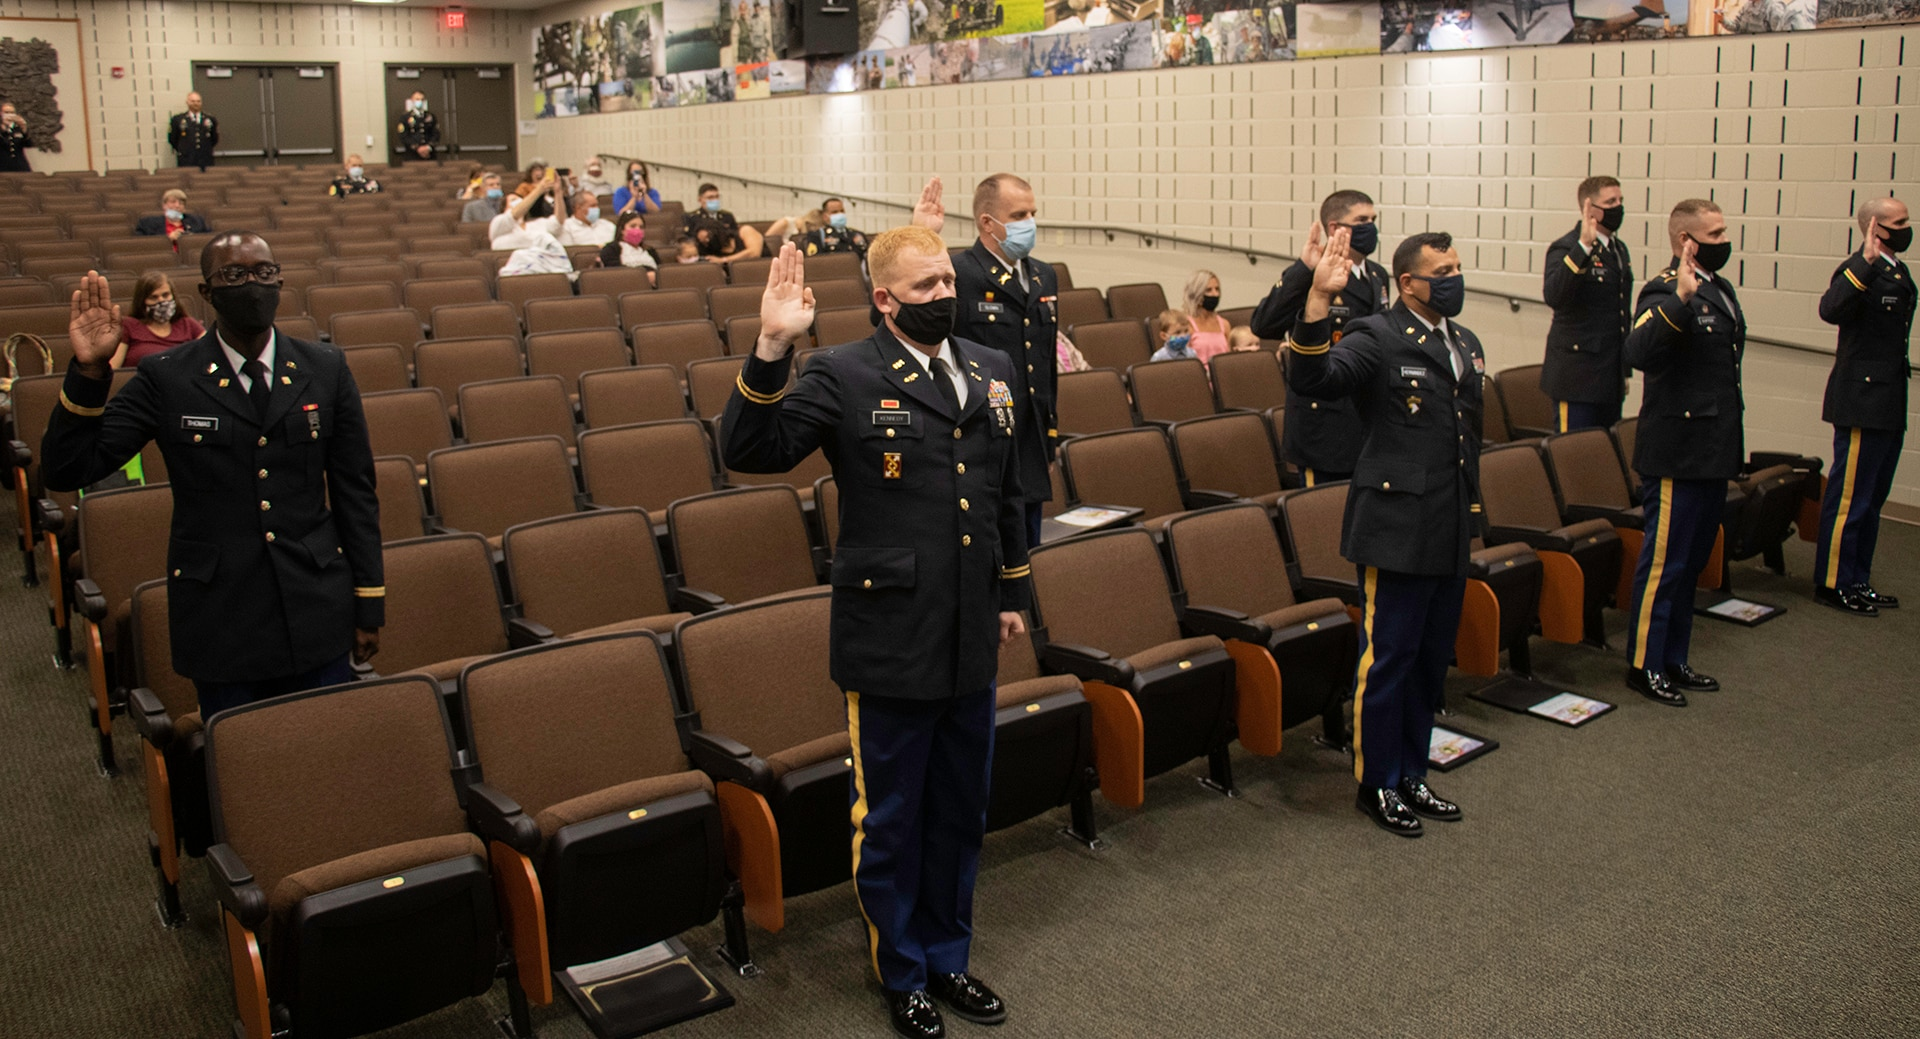 The 2020 graduates of the Illinois Army National Guard's Officer Candidate School recite the oath of office during the OCS Commissioning ceremony Aug. 23 at the Illinois Military Academy, Camp Lincoln, Springfield, Illinois.